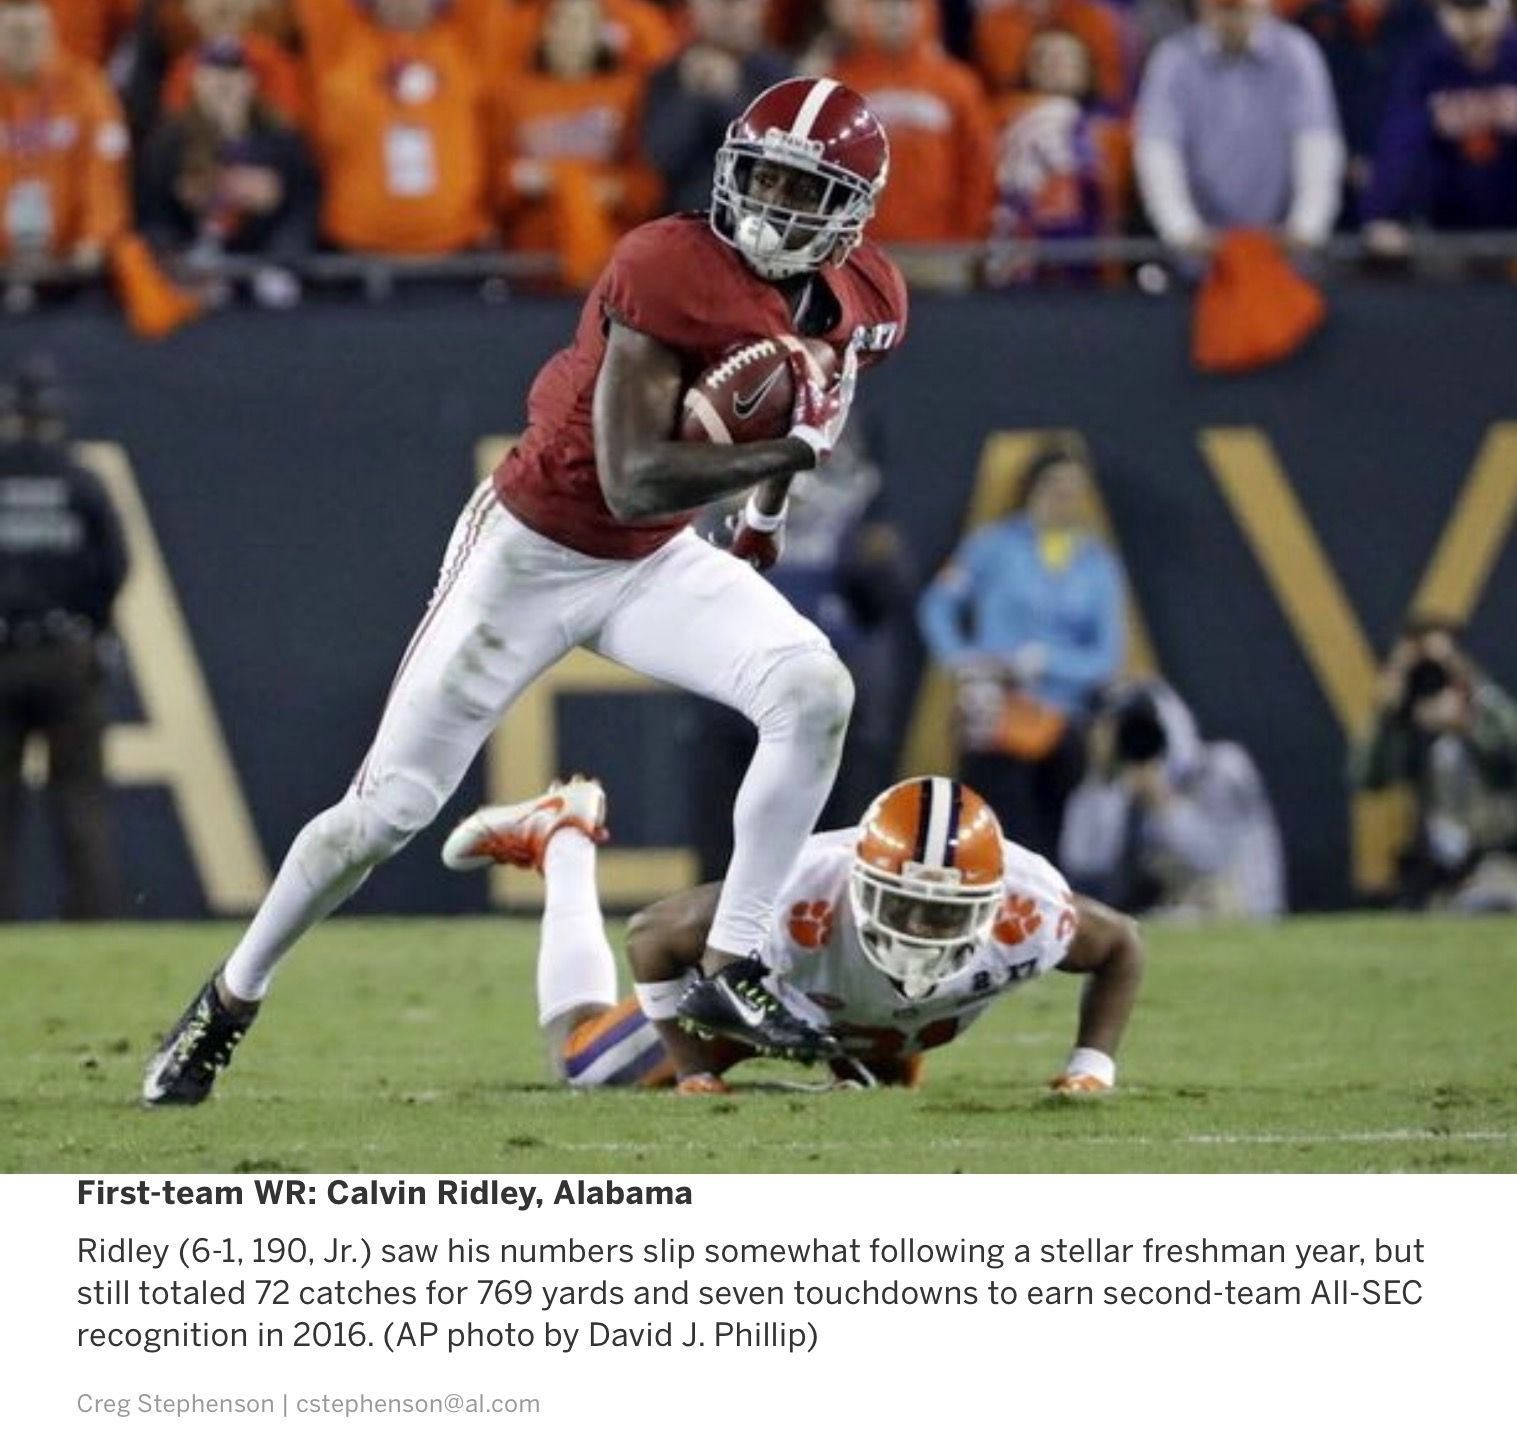 Calvin Ridley 1st Team Wr 71st Annual Preseason All Sec Offense Presented By Al Com Alabama Crimson Tide Football Crimson Tide Football Alabama Crimson Tide